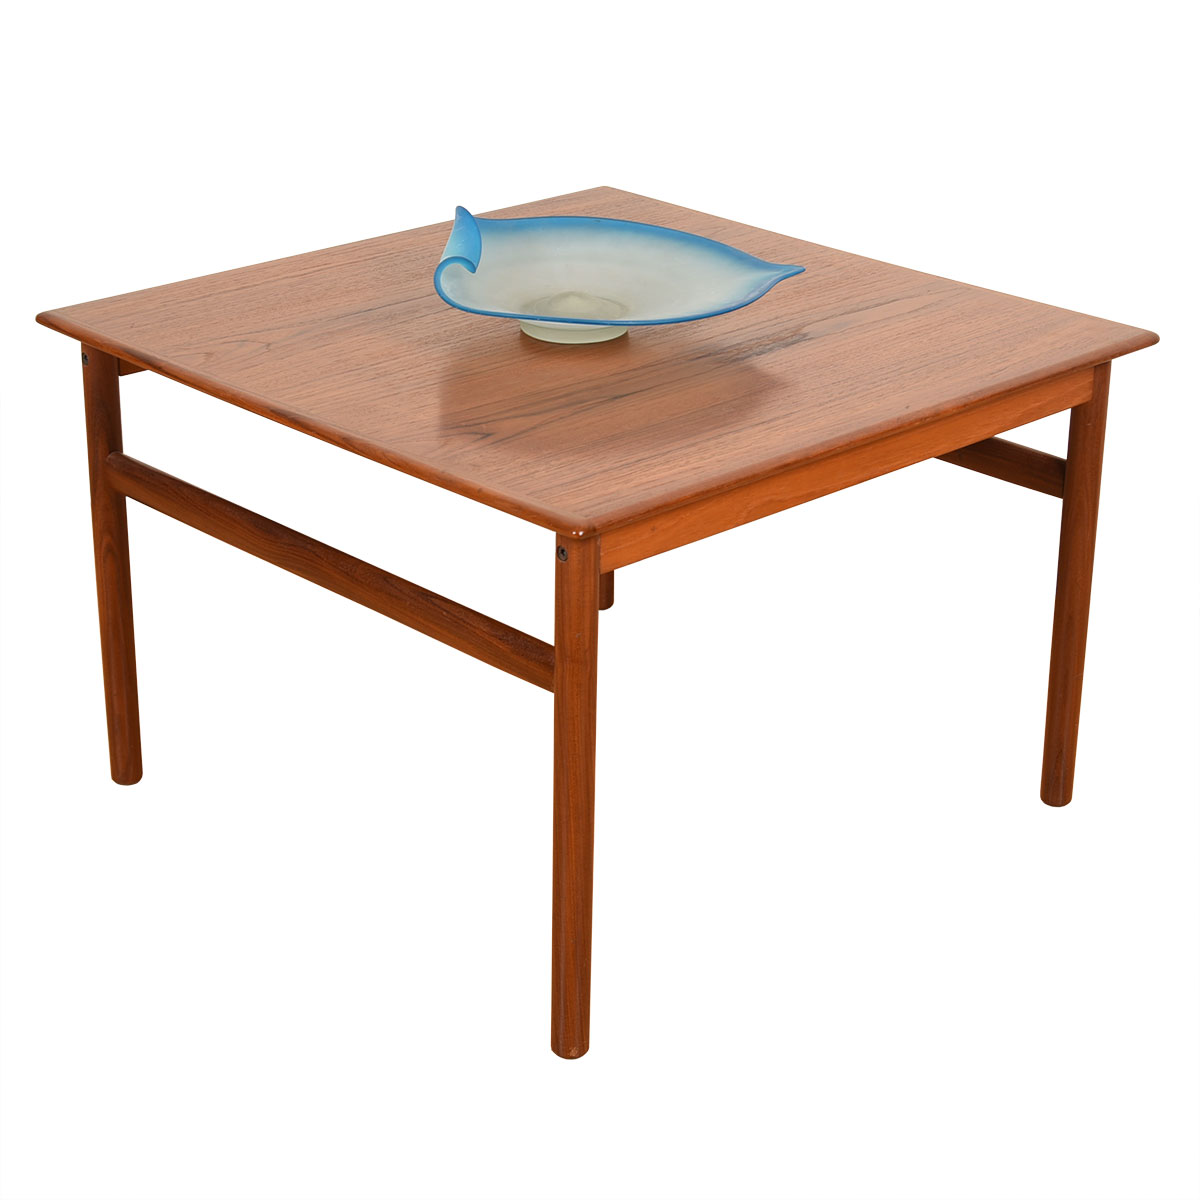 28.5″ Square Danish Modern Teak Coffee / Accent Table